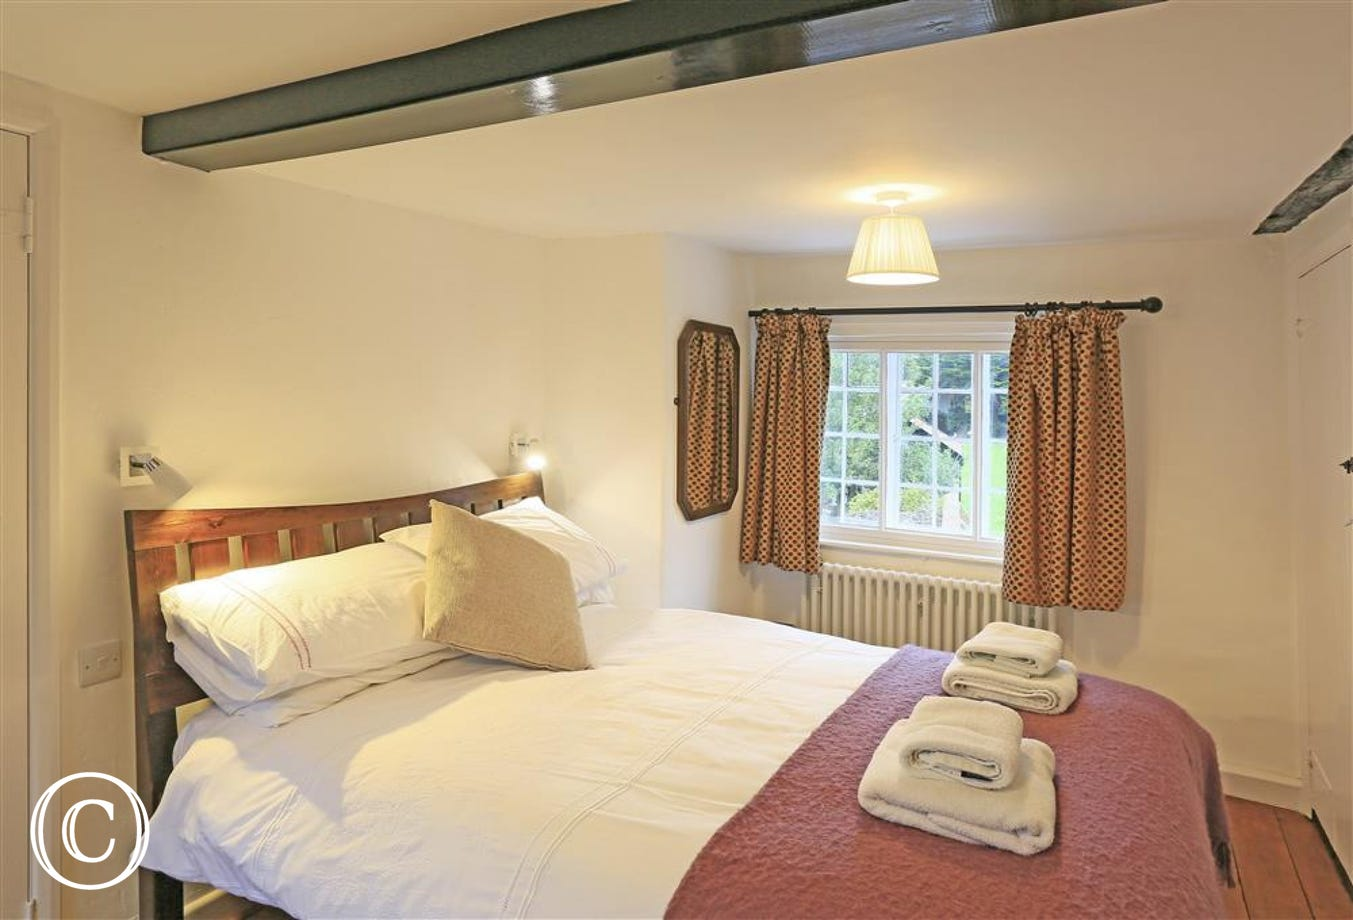 A perfect room to kick off your shoes and curl up in readiness for your next day out.